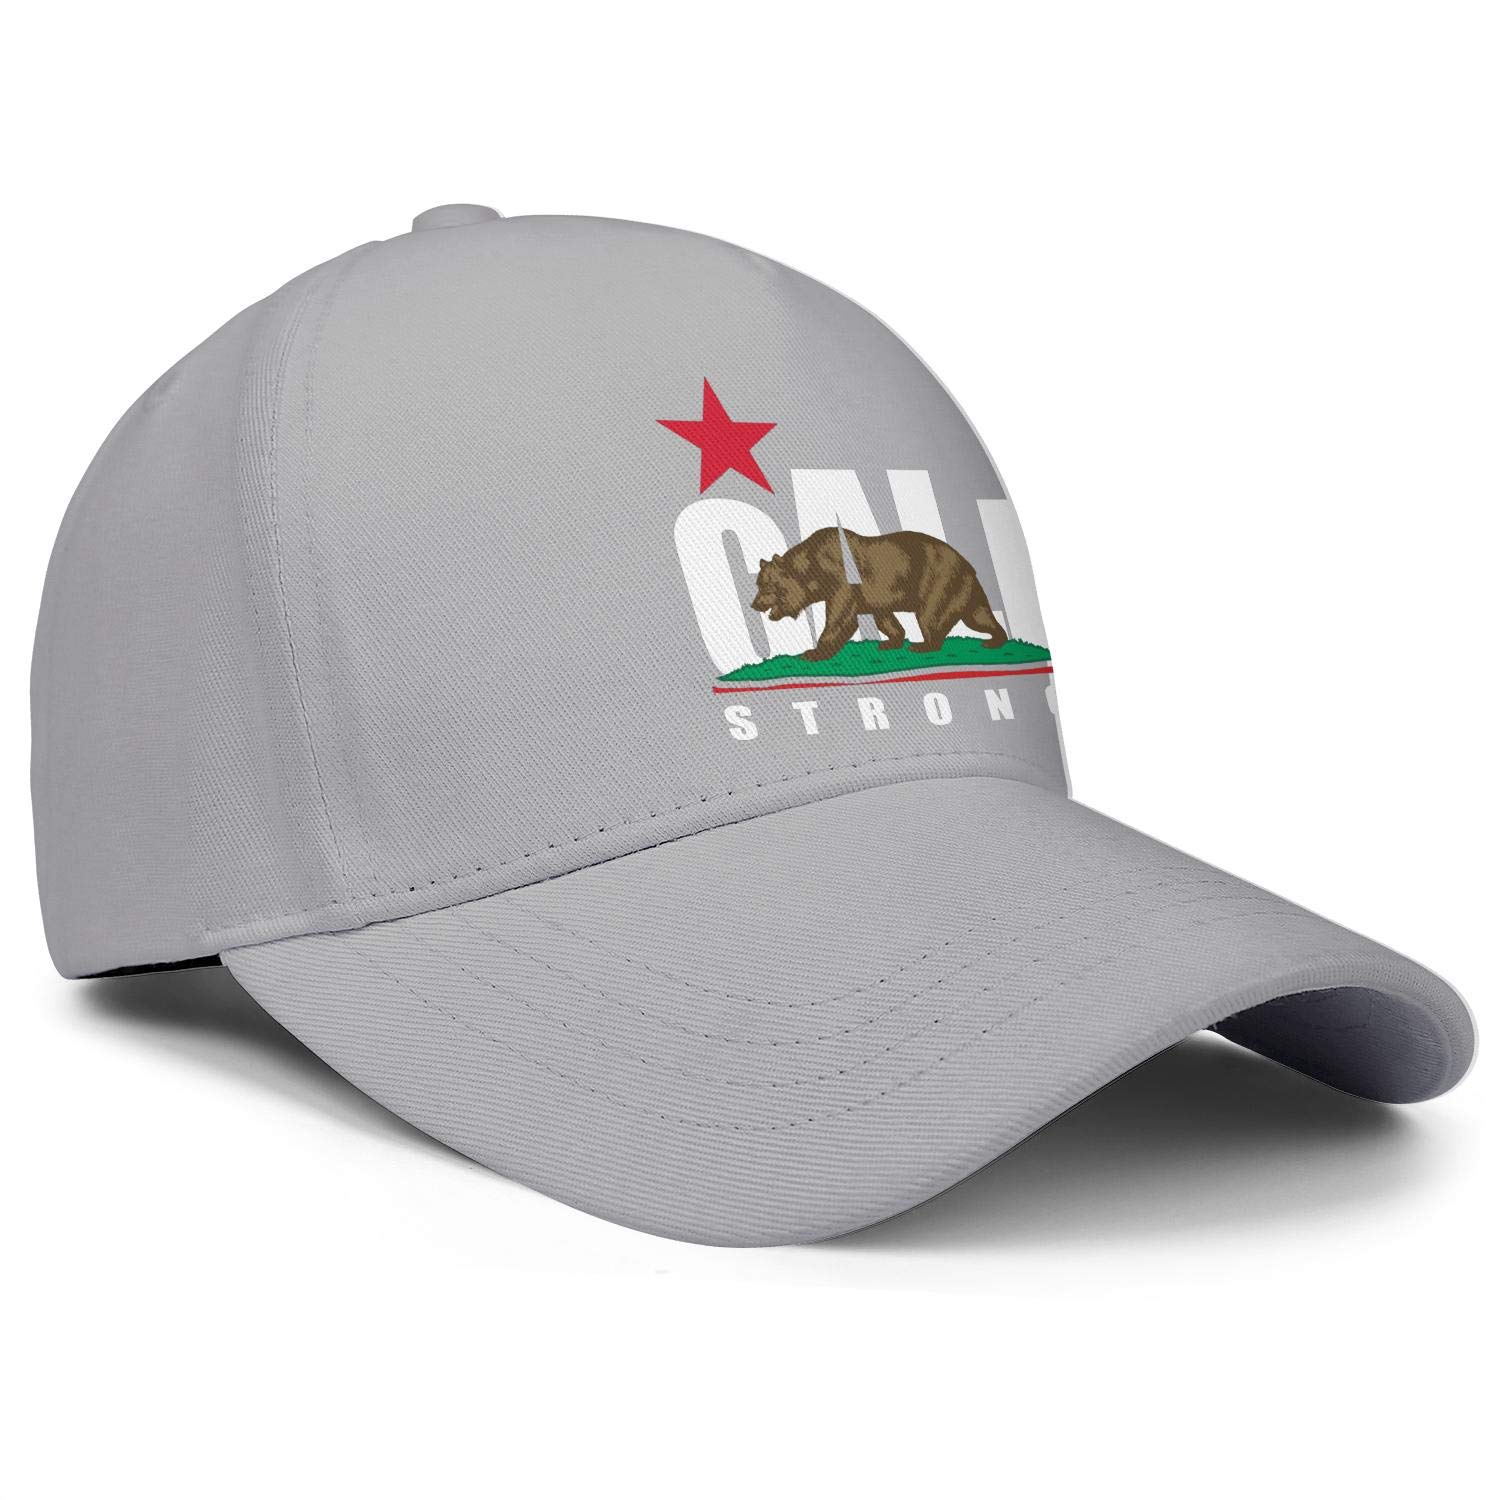 CALI Strong is The Original California Unisex Baseball Cap Two-Tone Stretch Fishing Caps Adjustable Trucker Caps Dad-Hat